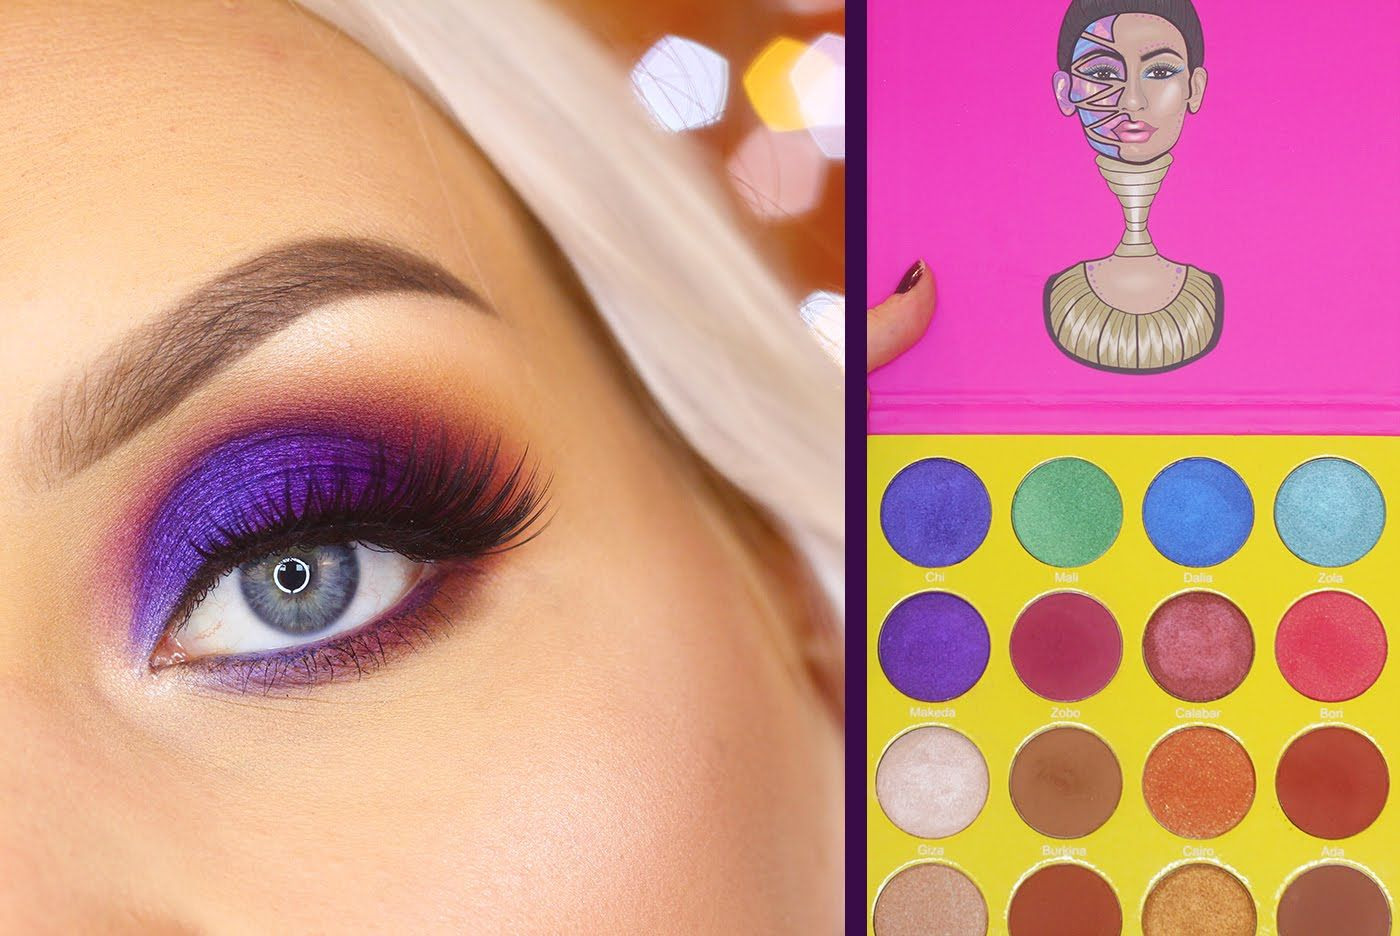 99cbe677fbd Colorful Fall Makeup - Juvia's Place The Masquerade Palette Tutorial ...